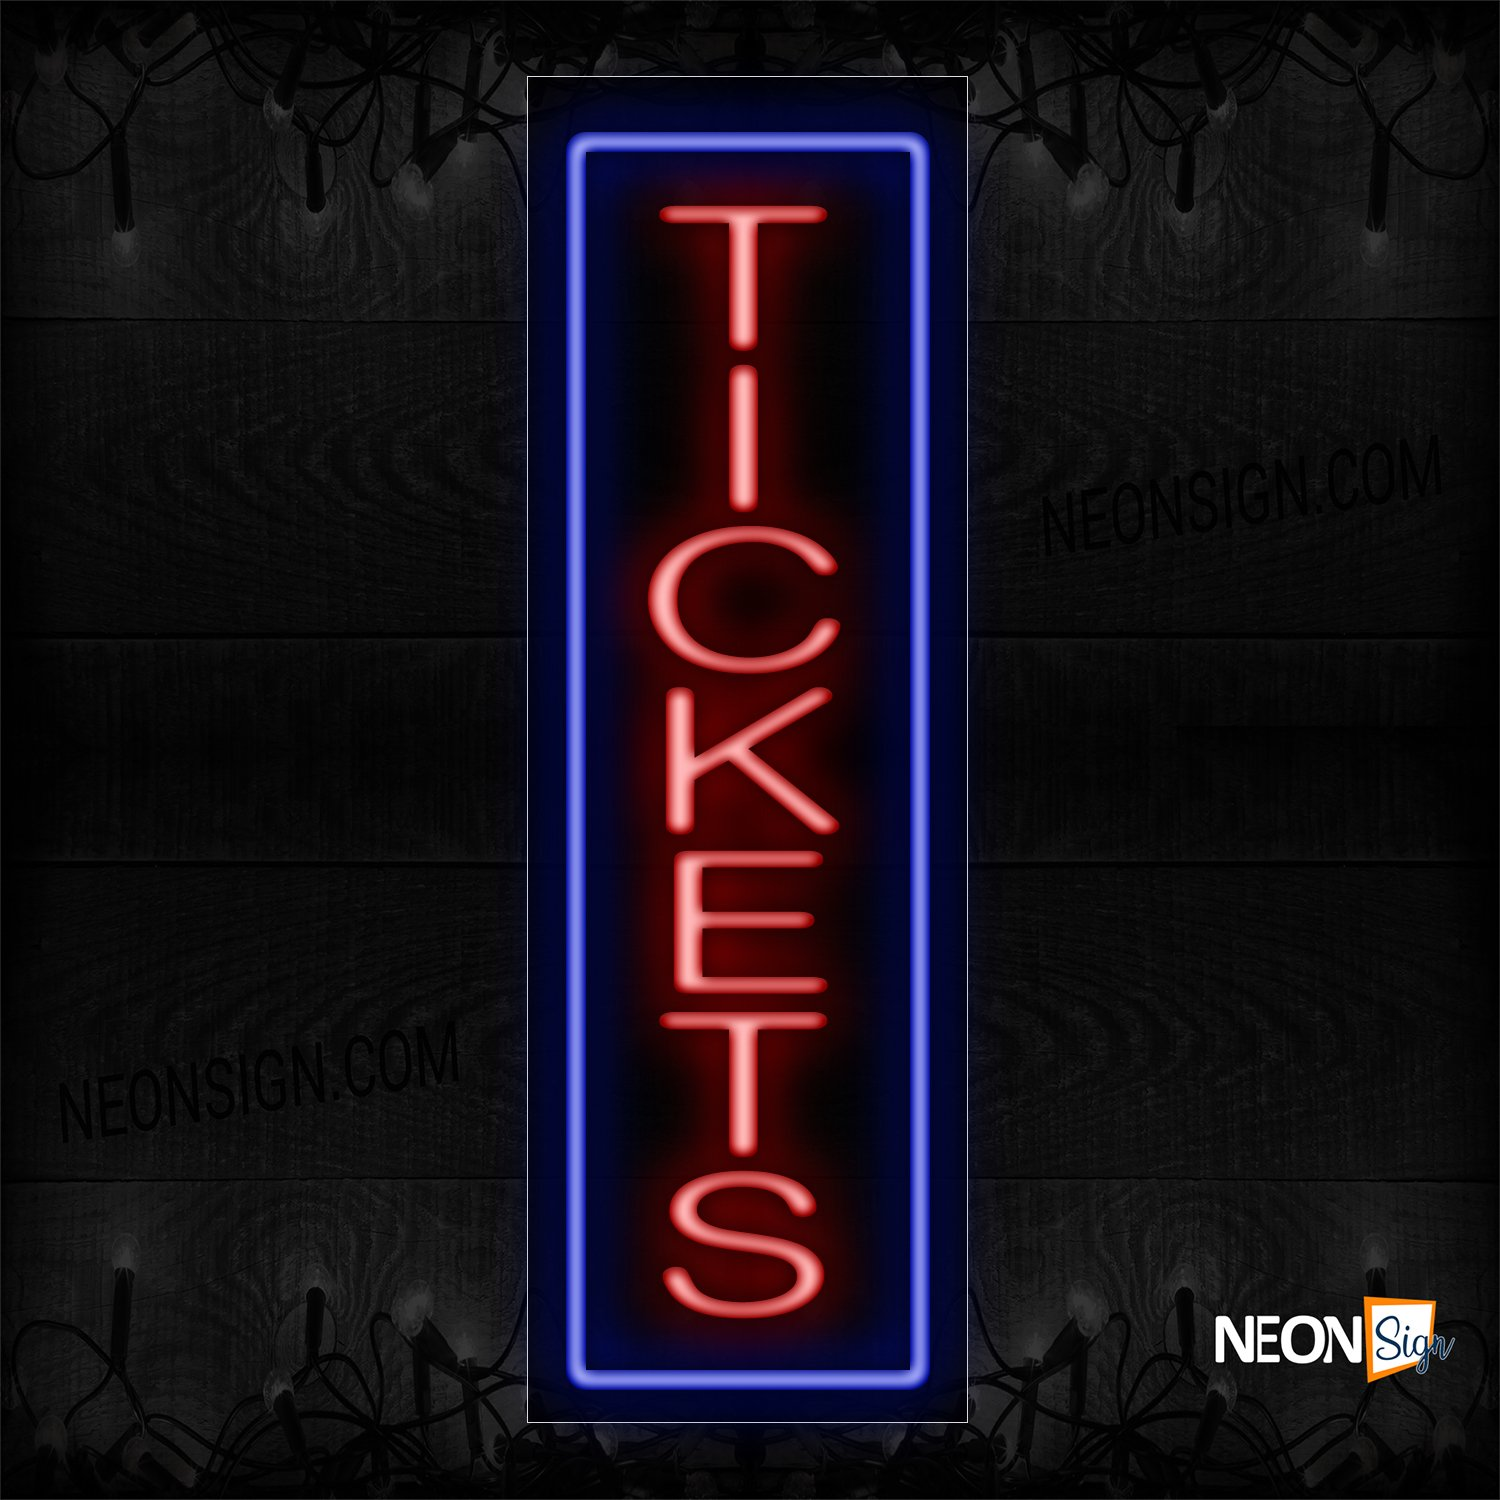 Image of 11635 Tickets In Red With Blue Border (Vertical) Neon Sign_13x32 Black Backing